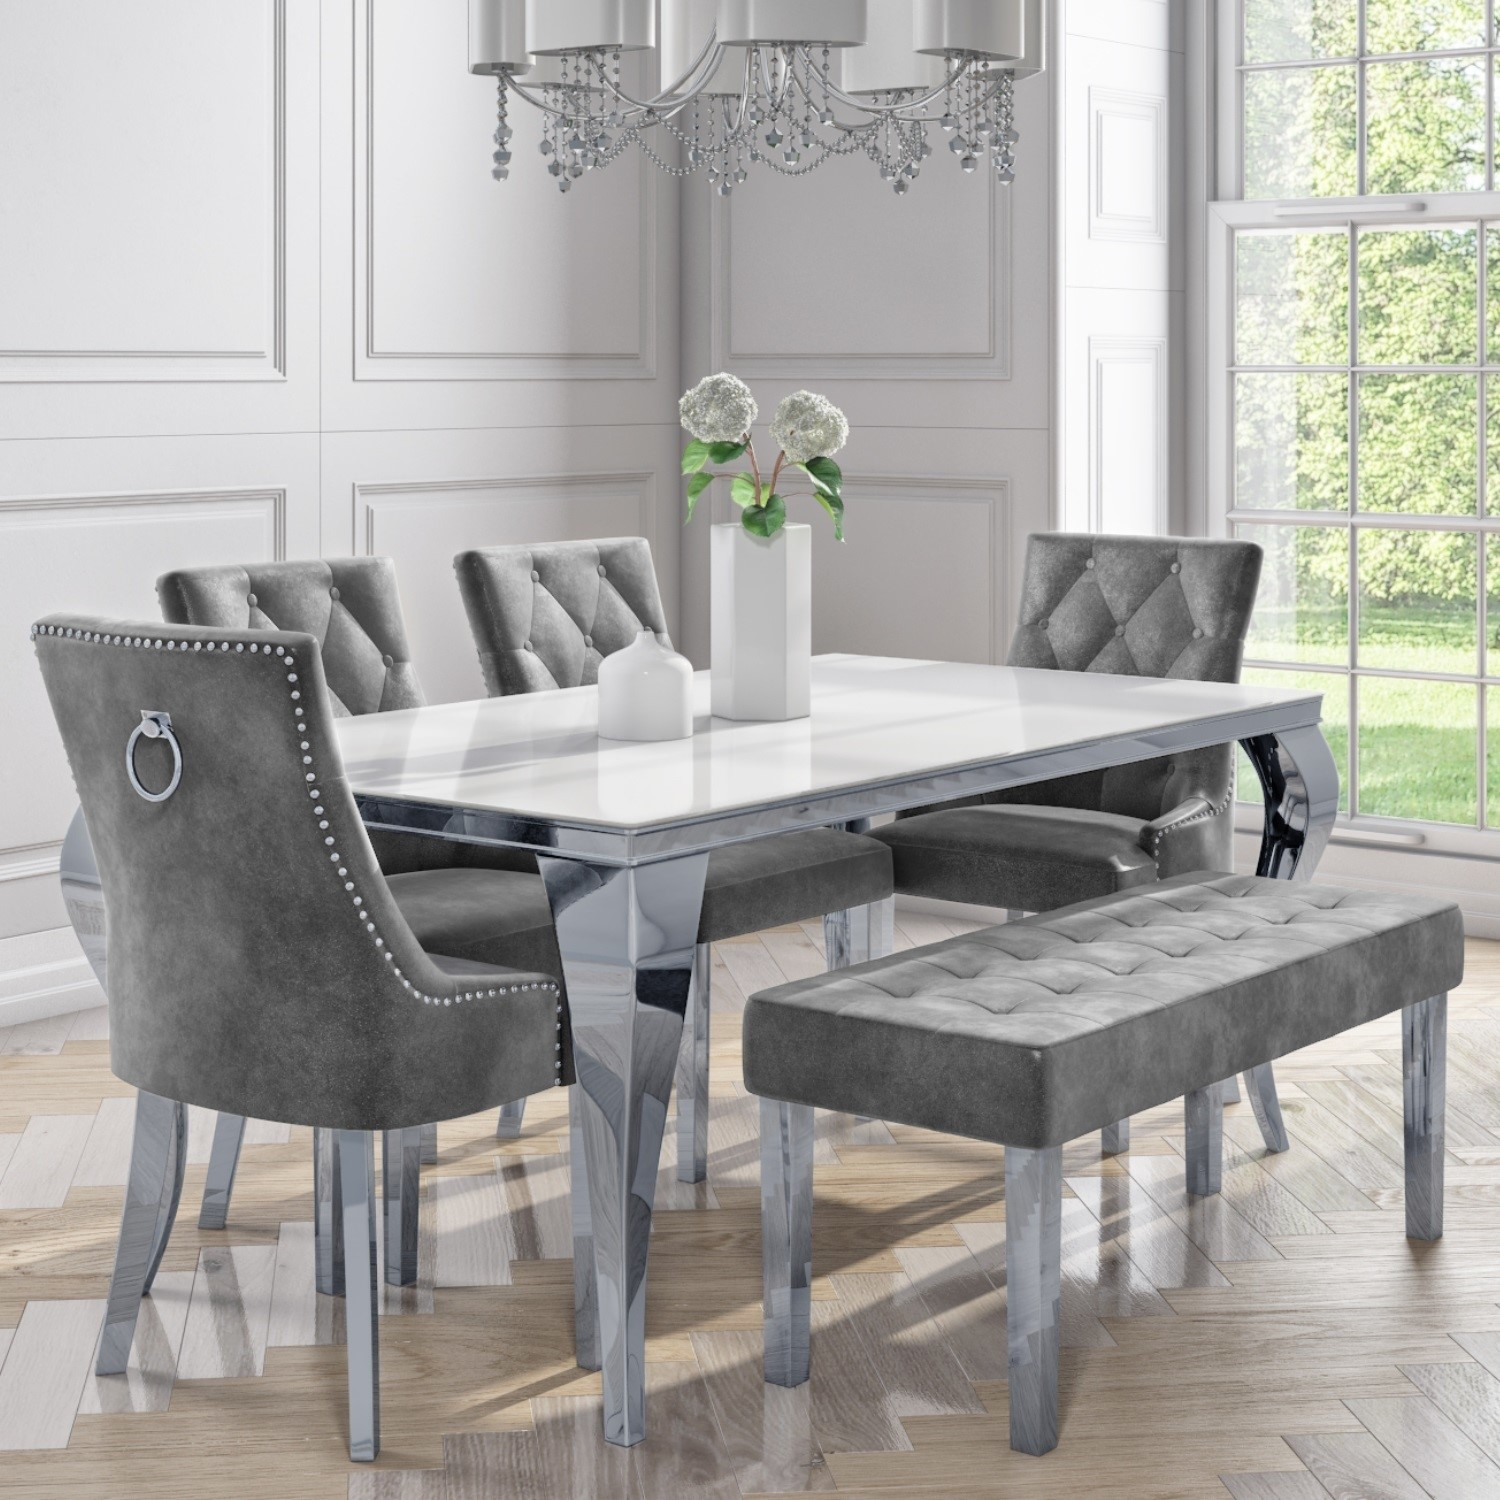 White Mirrored Dining Table With 4 Grey